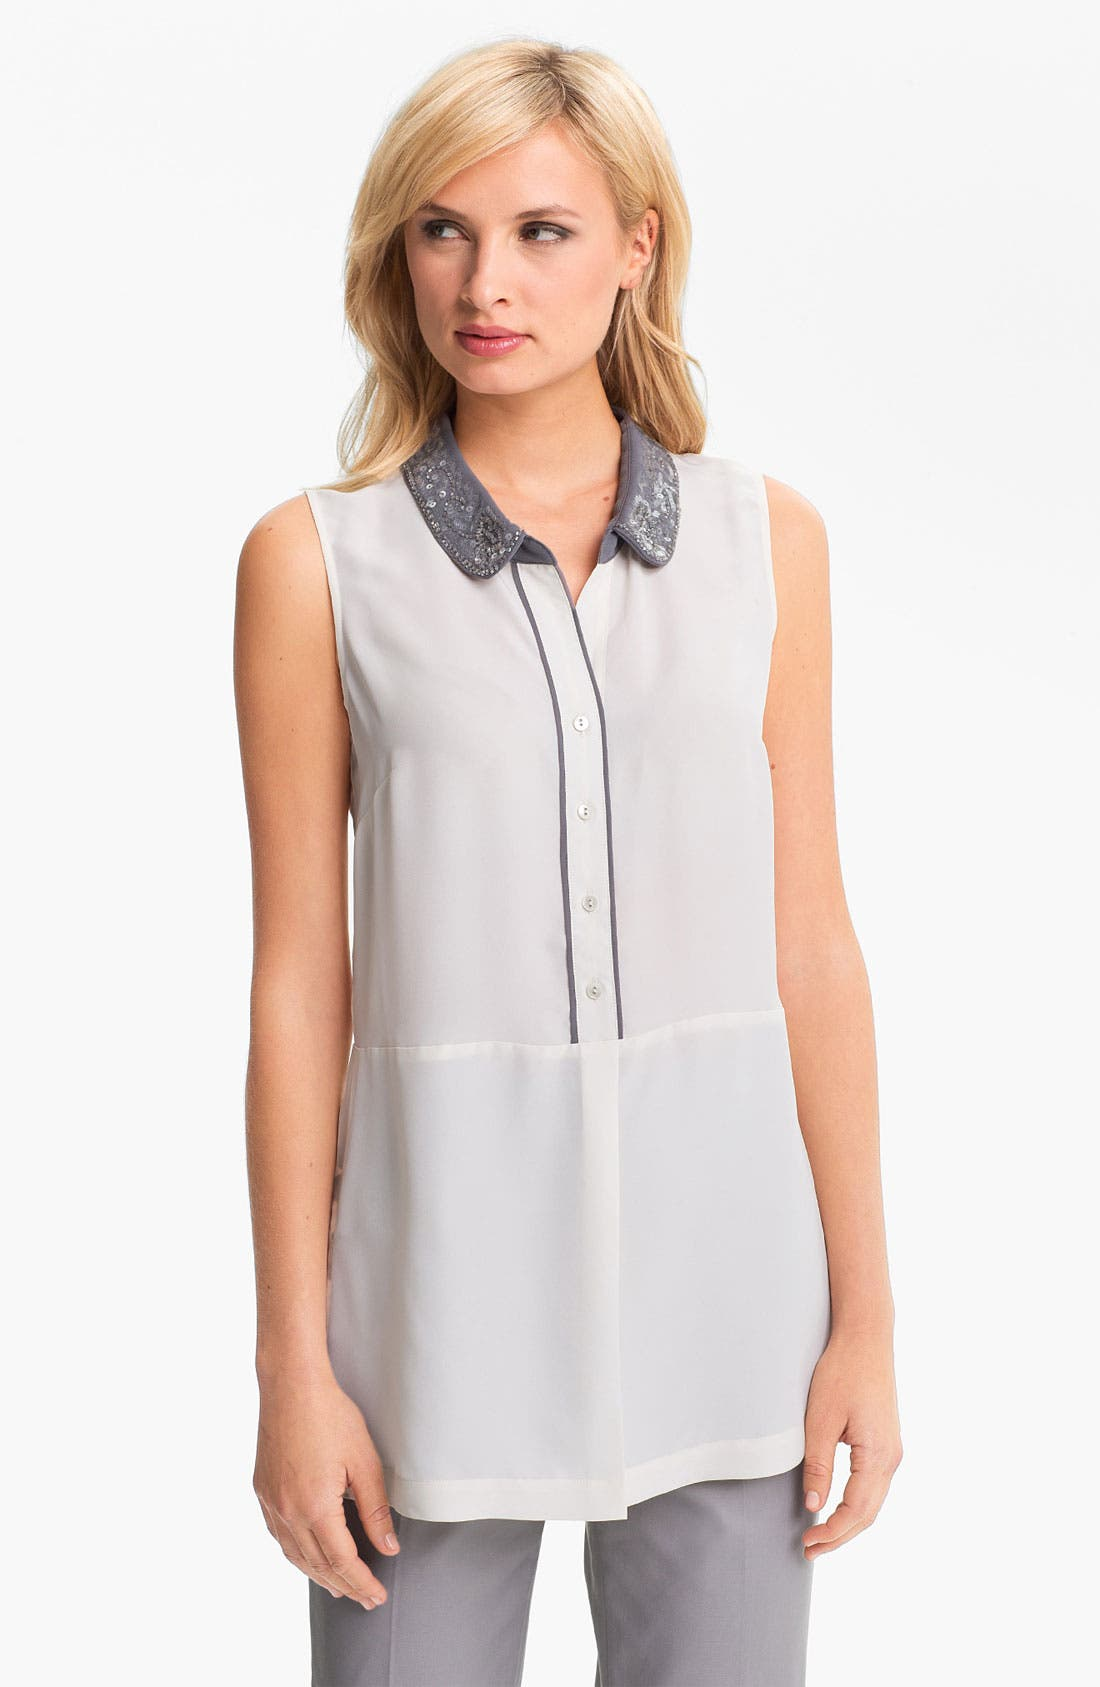 Alternate Image 1 Selected - Nic + Zoe Sequin Collar Sleeveless Blouse (Petite)